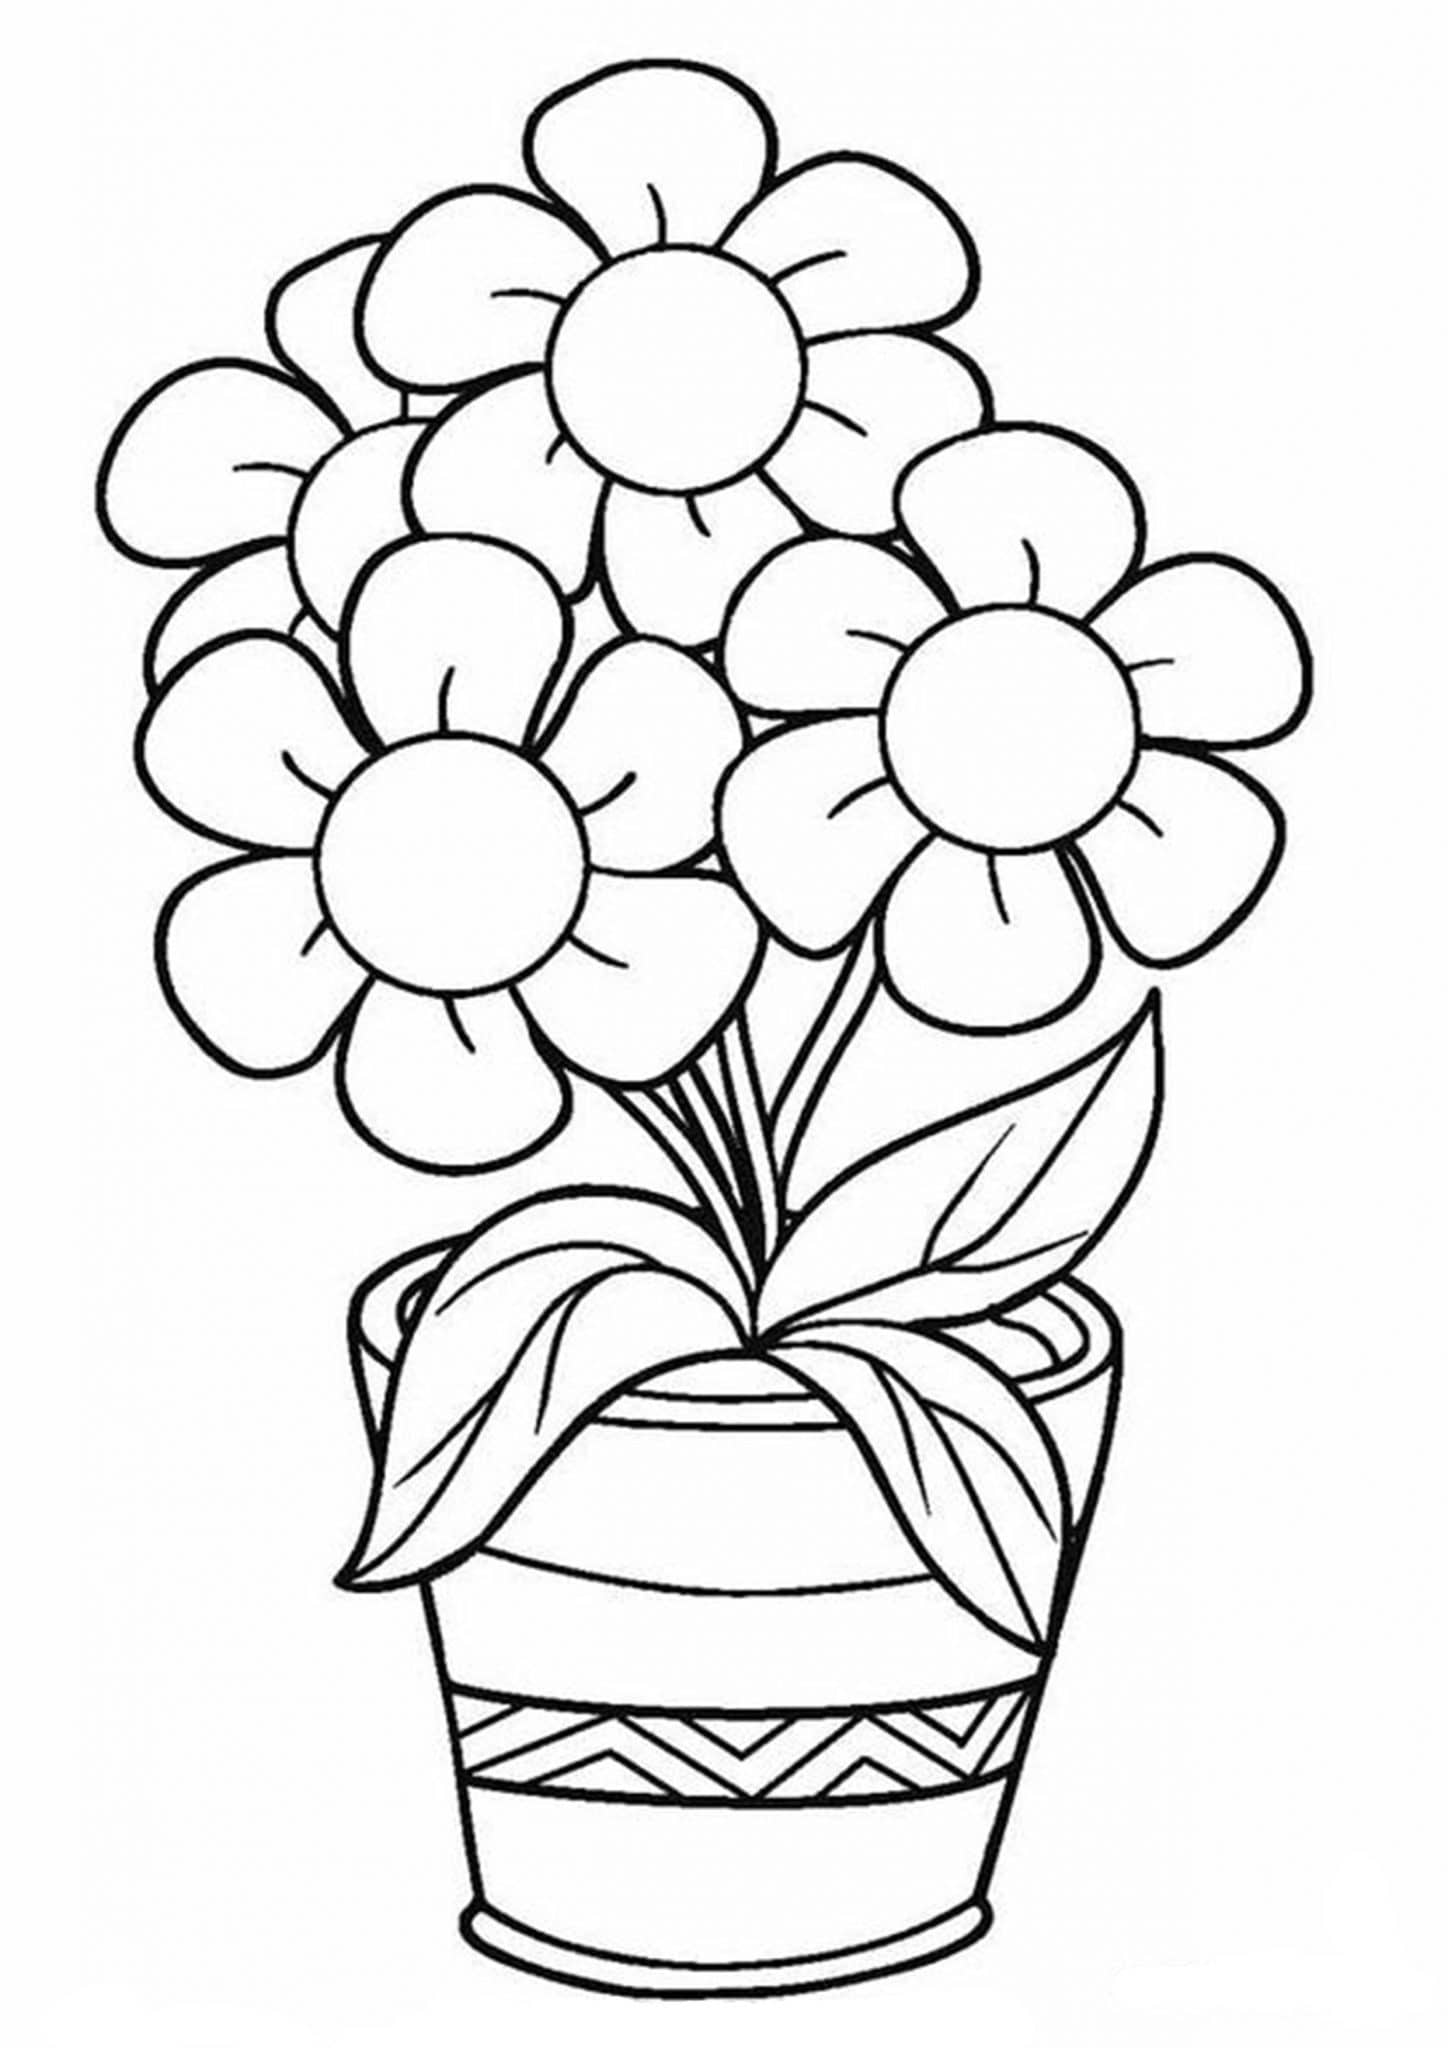 - Free & Easy To Print Flower Coloring Pages - Tulamama